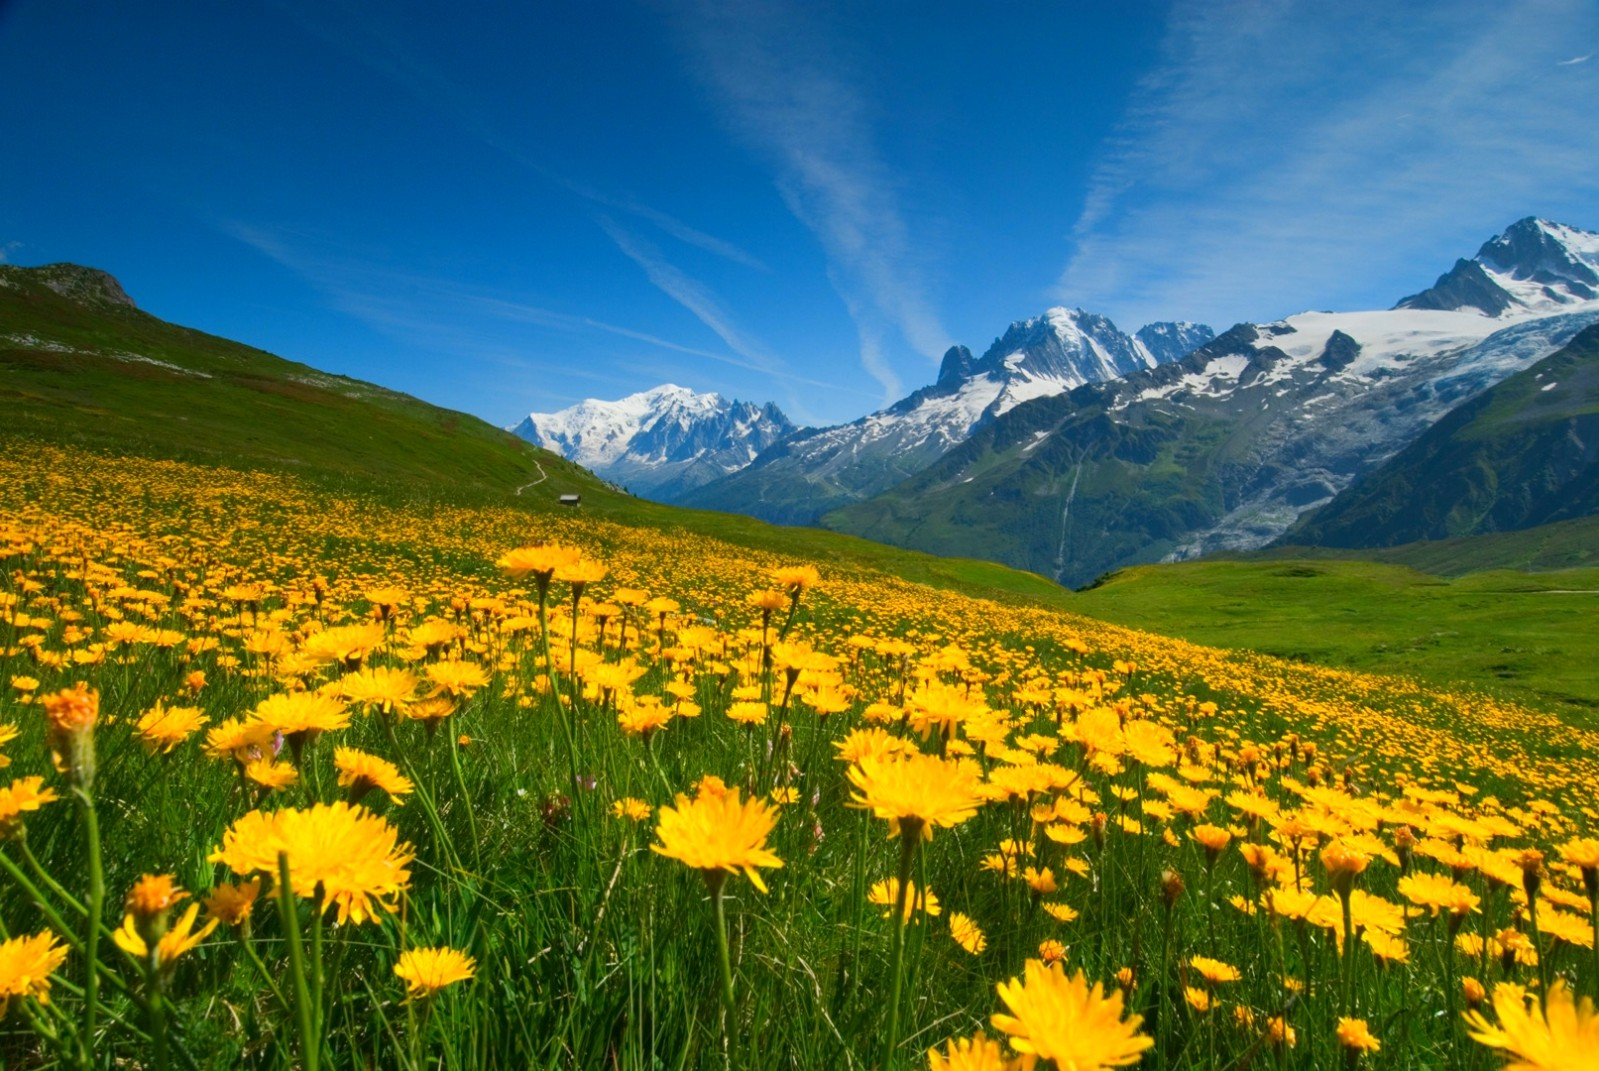 mountain flowers in the spring